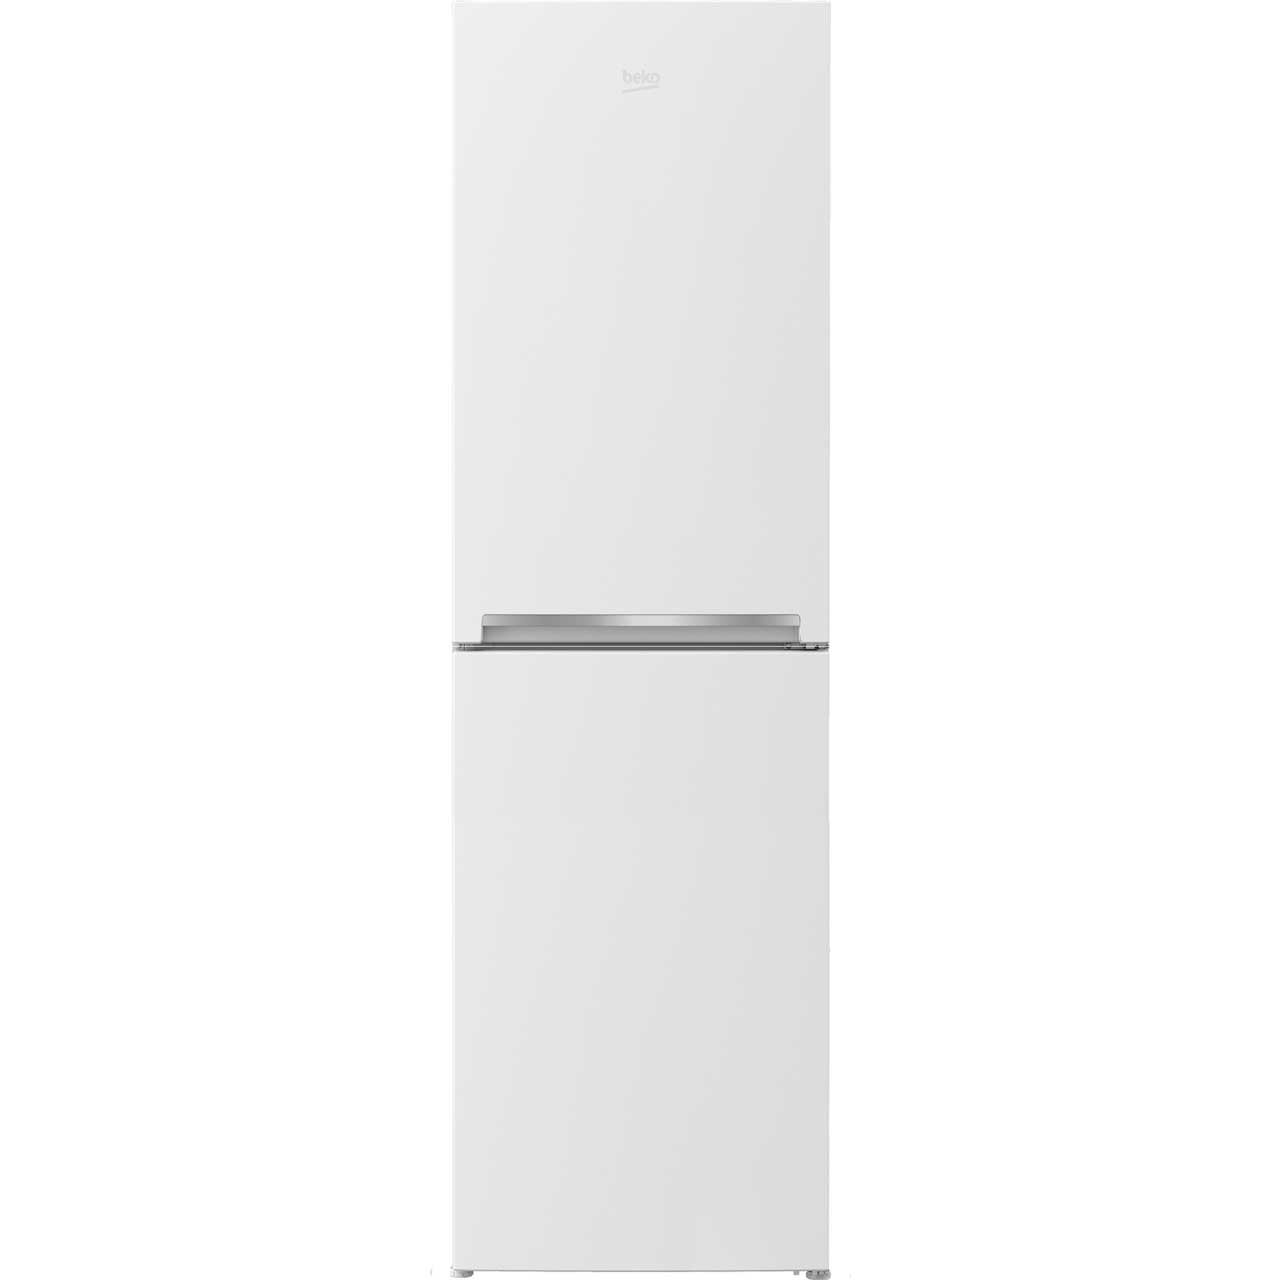 Beko CRFG1582W Free Standing Fridge Freezer Frost Free in White